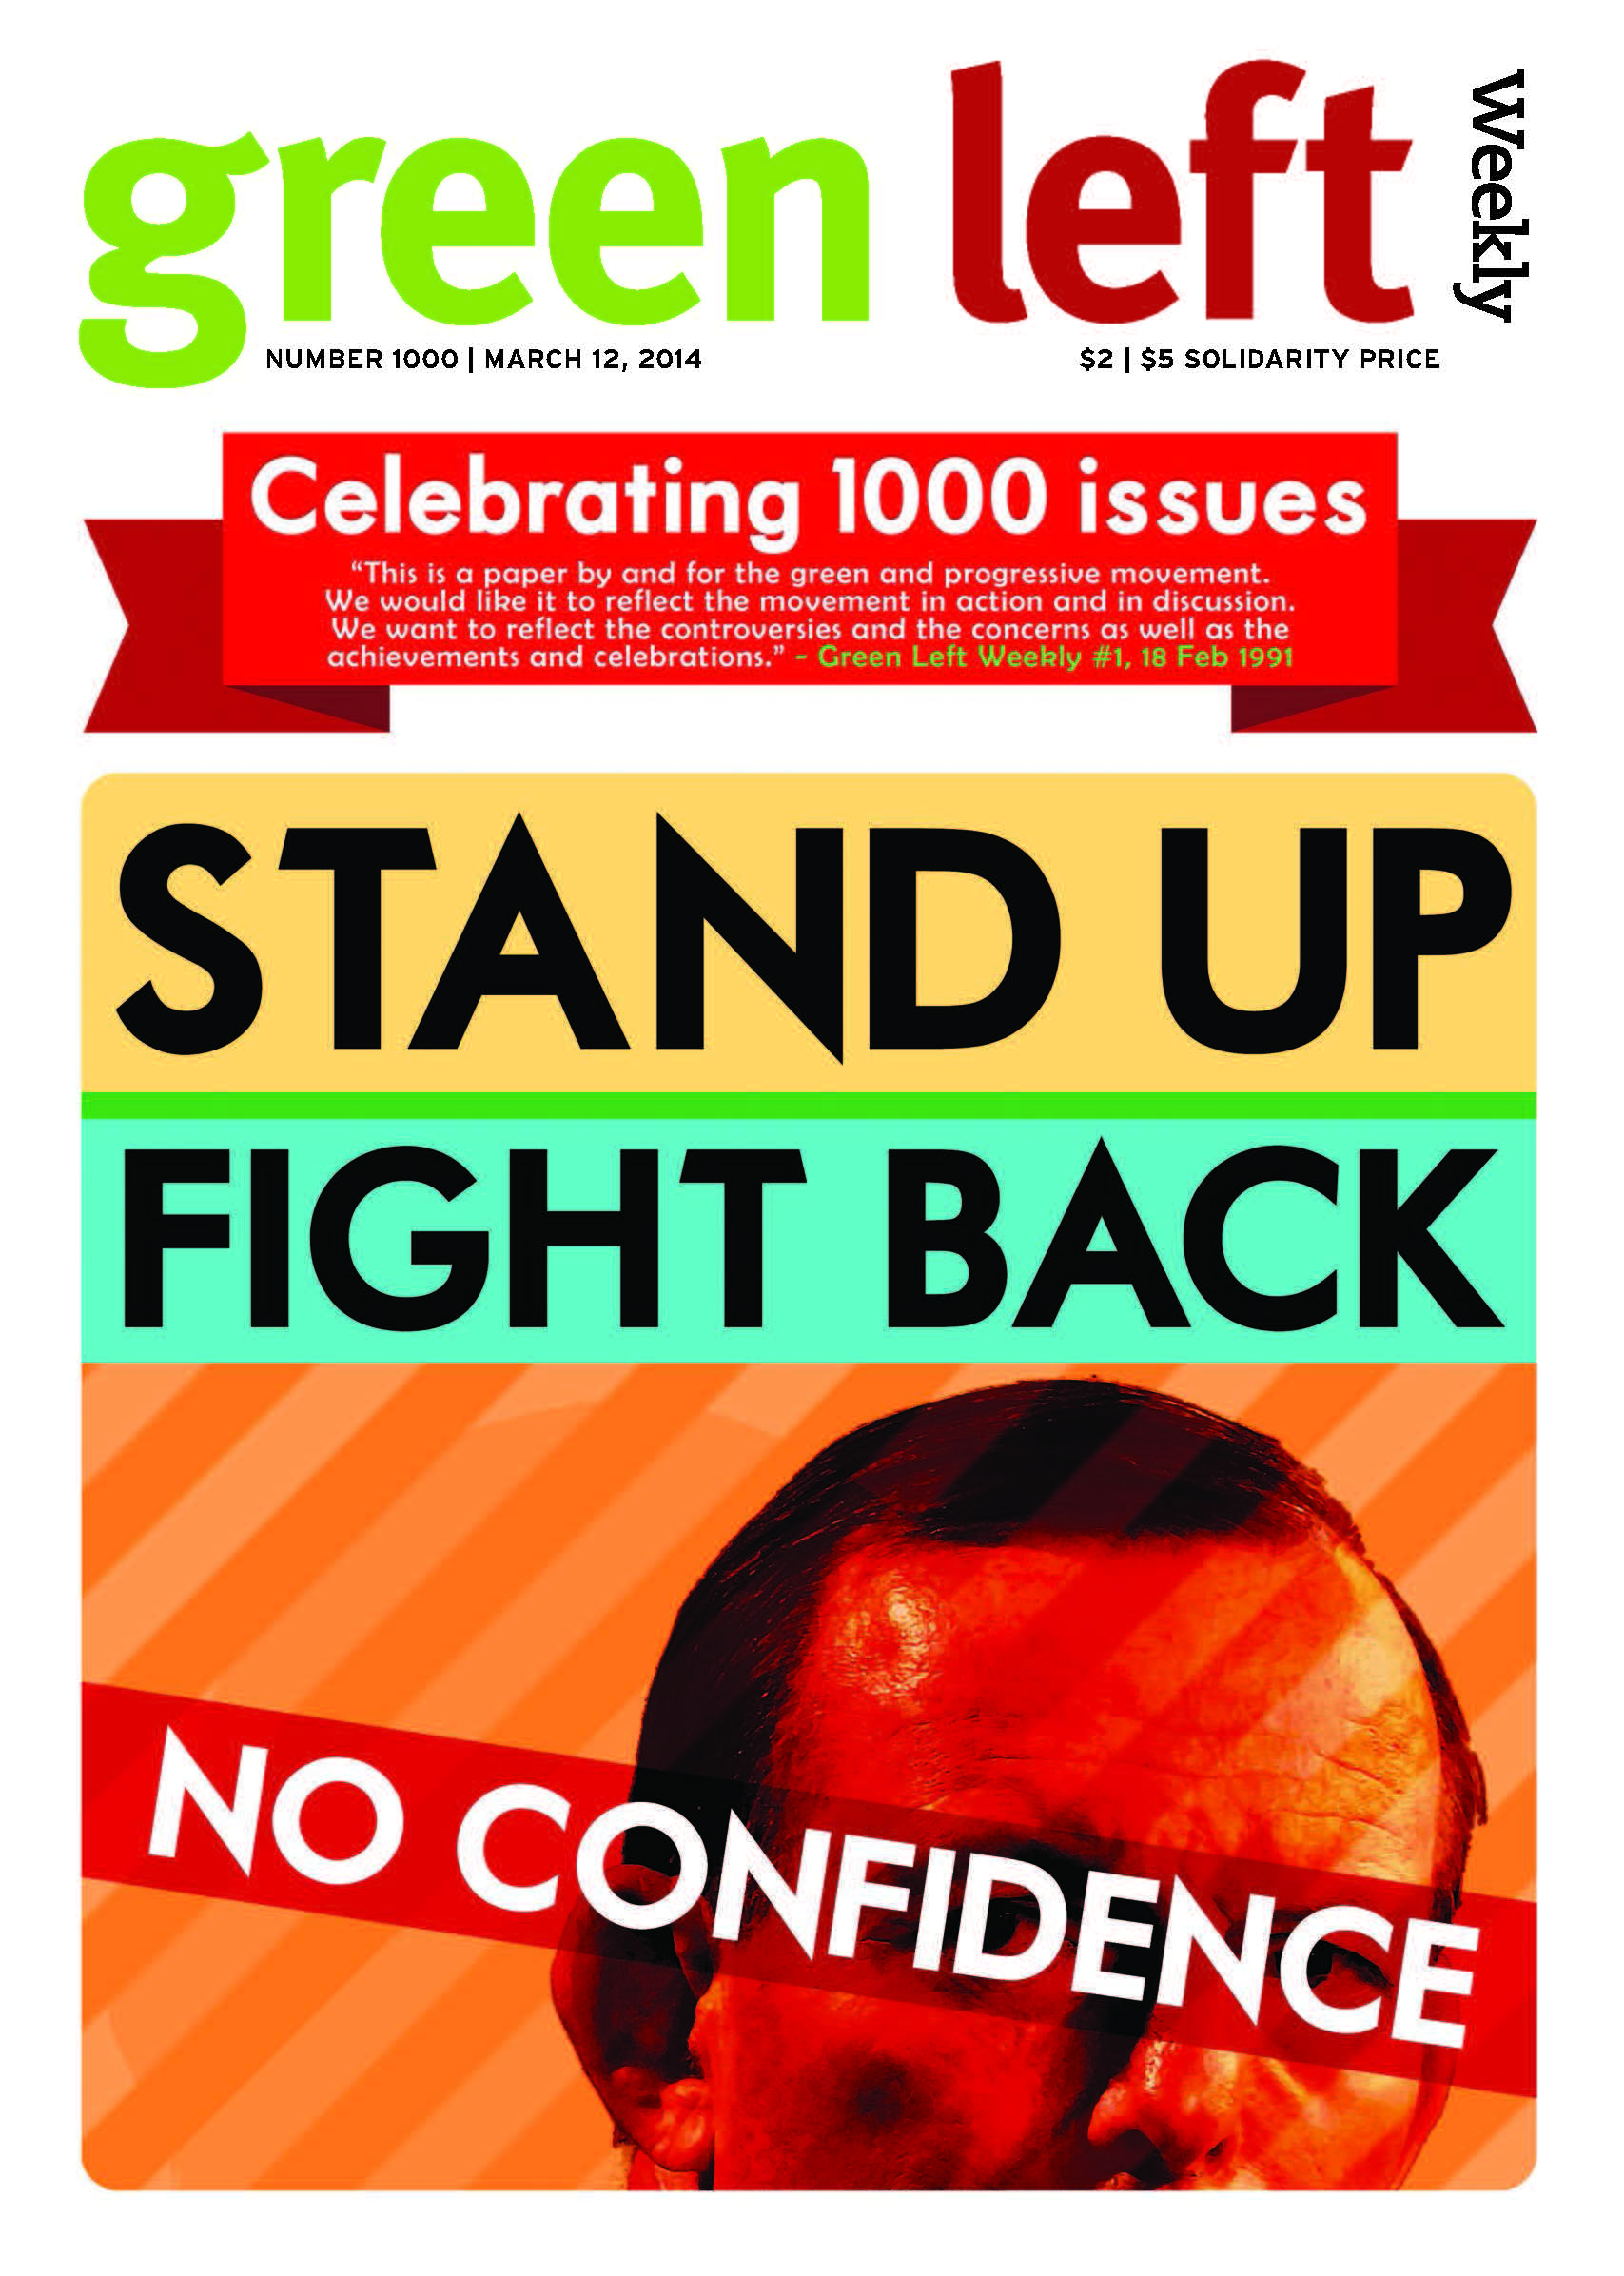 Green Left Weekly clocks up 1000 issues